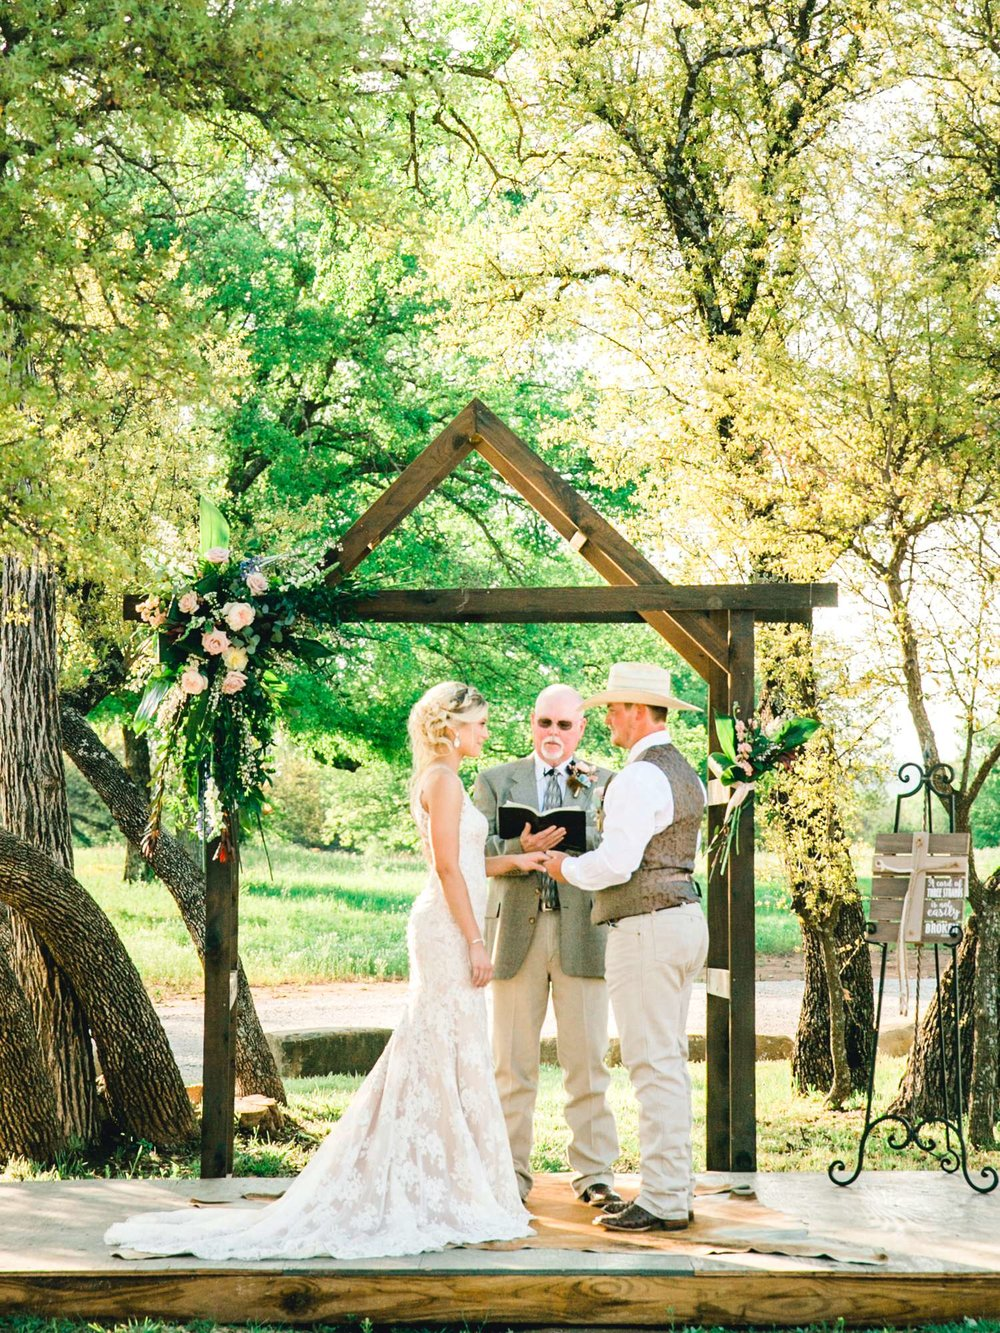 SARAH+TREVOR+BADGETT+SPARROW+CREEK+GRAHAM+TEXAS+ALLEEJ+WEDDINGS_0070.jpg